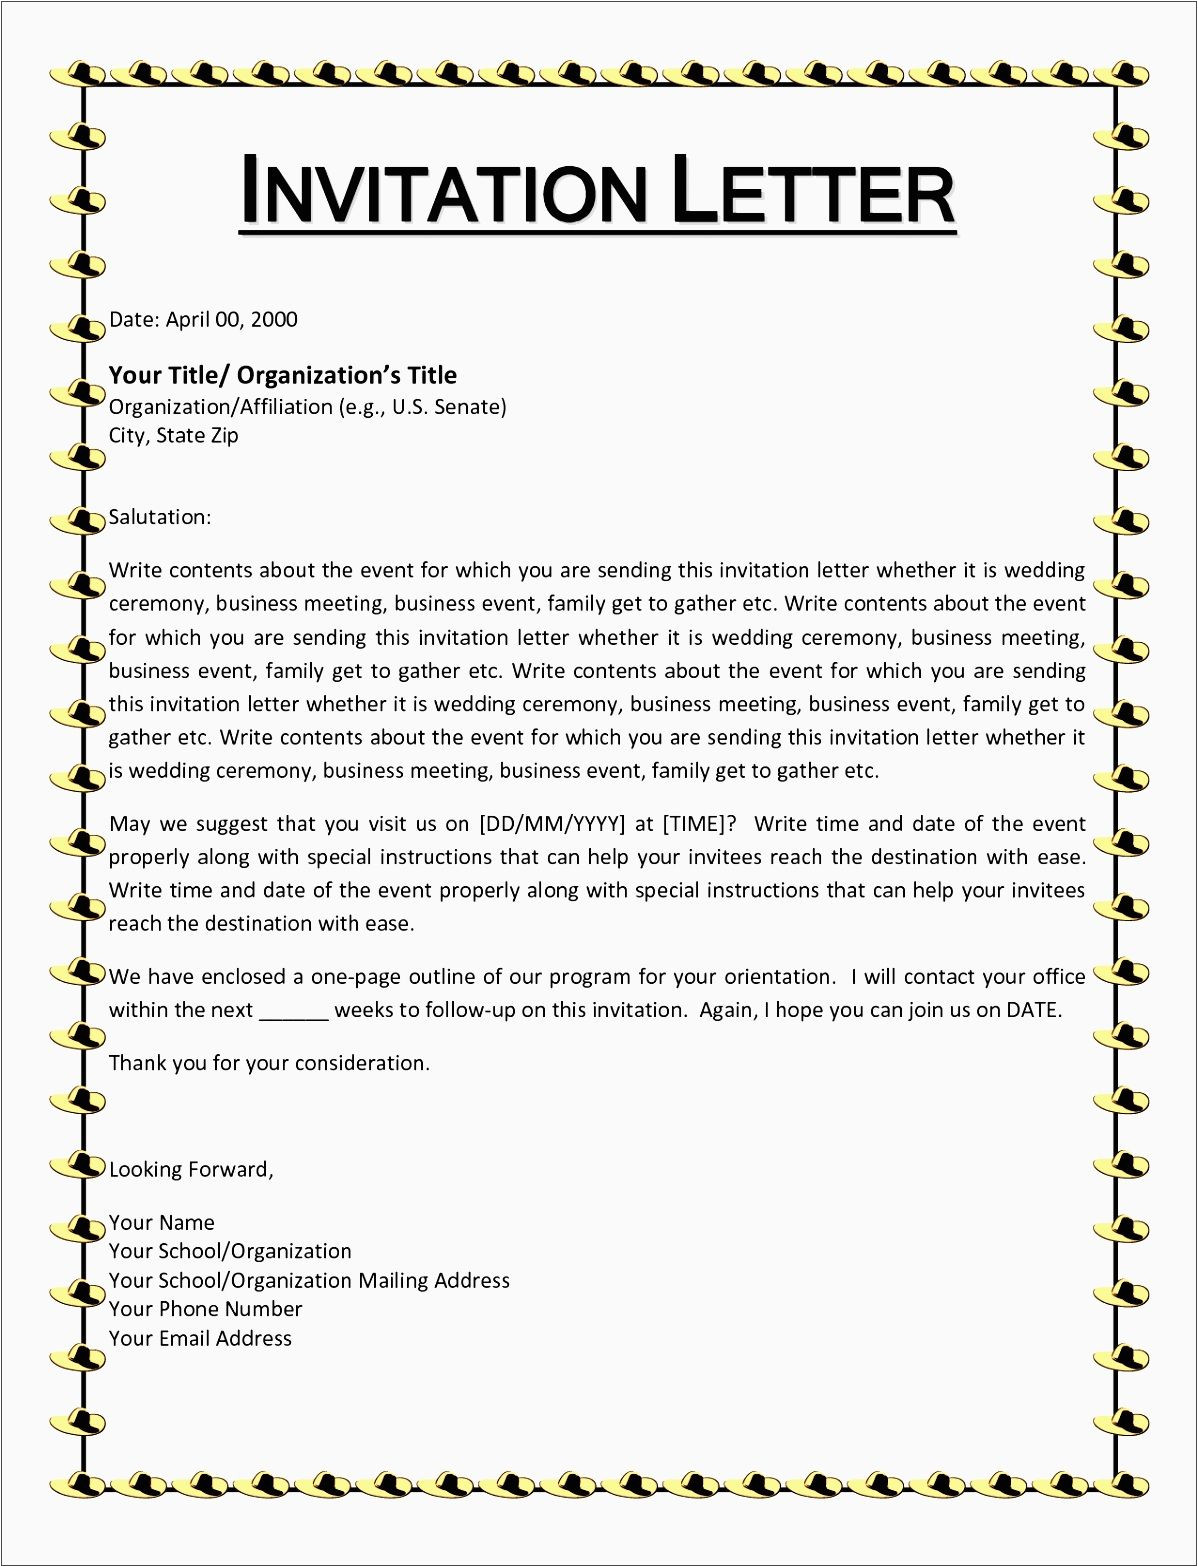 Beautiful Words to Write In A Wedding Card Invitation Letter Informal Saevk Beautiful Wedding